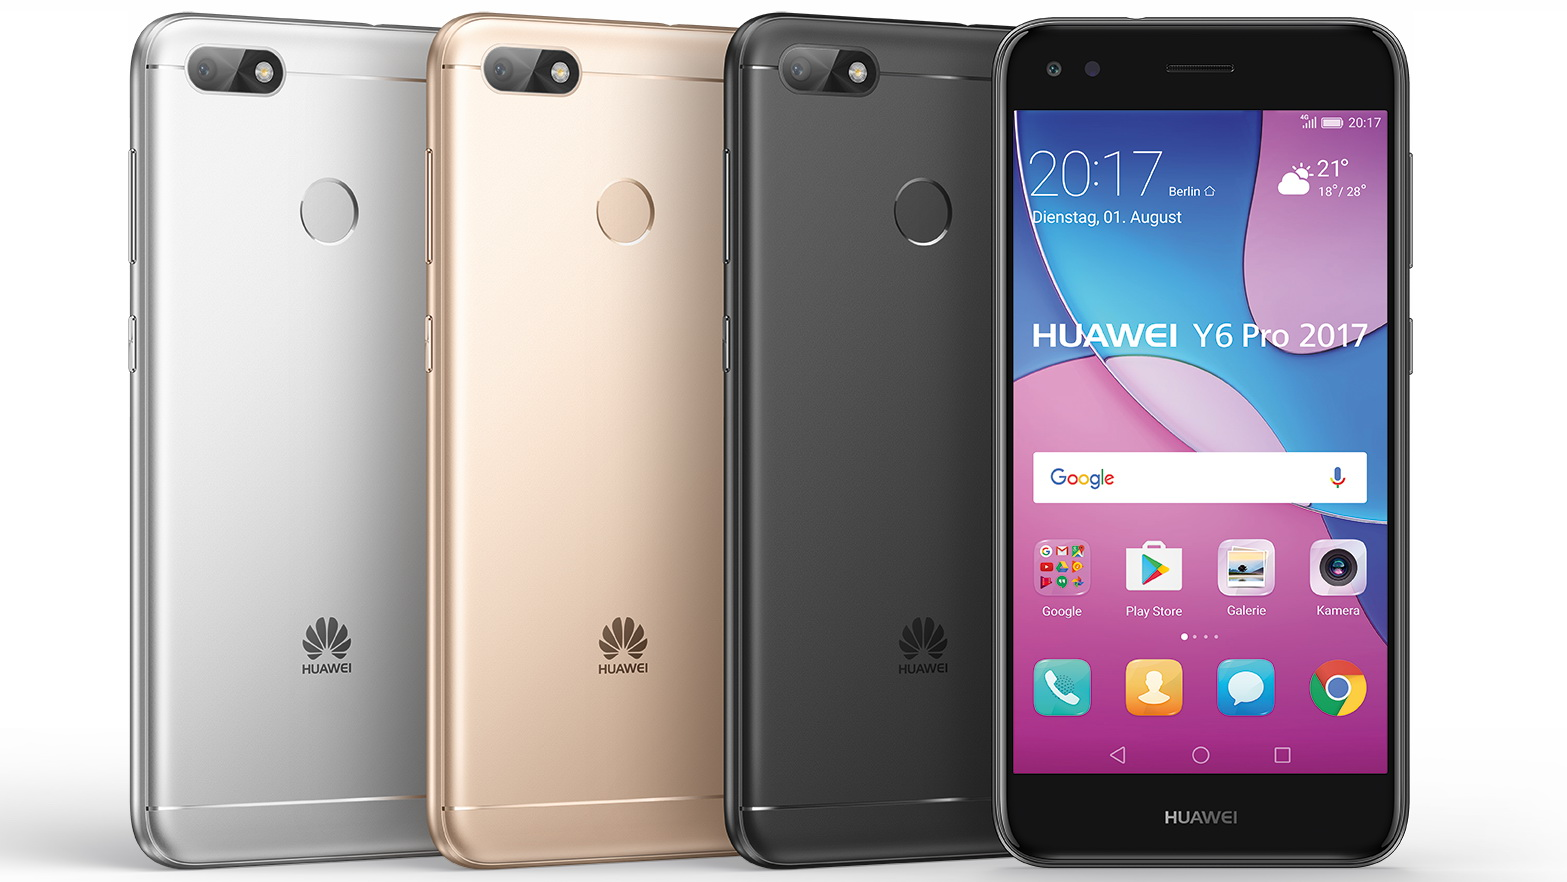 huawei y6 pro 2017 5 zoll hd smartphone f r 200 euro. Black Bedroom Furniture Sets. Home Design Ideas